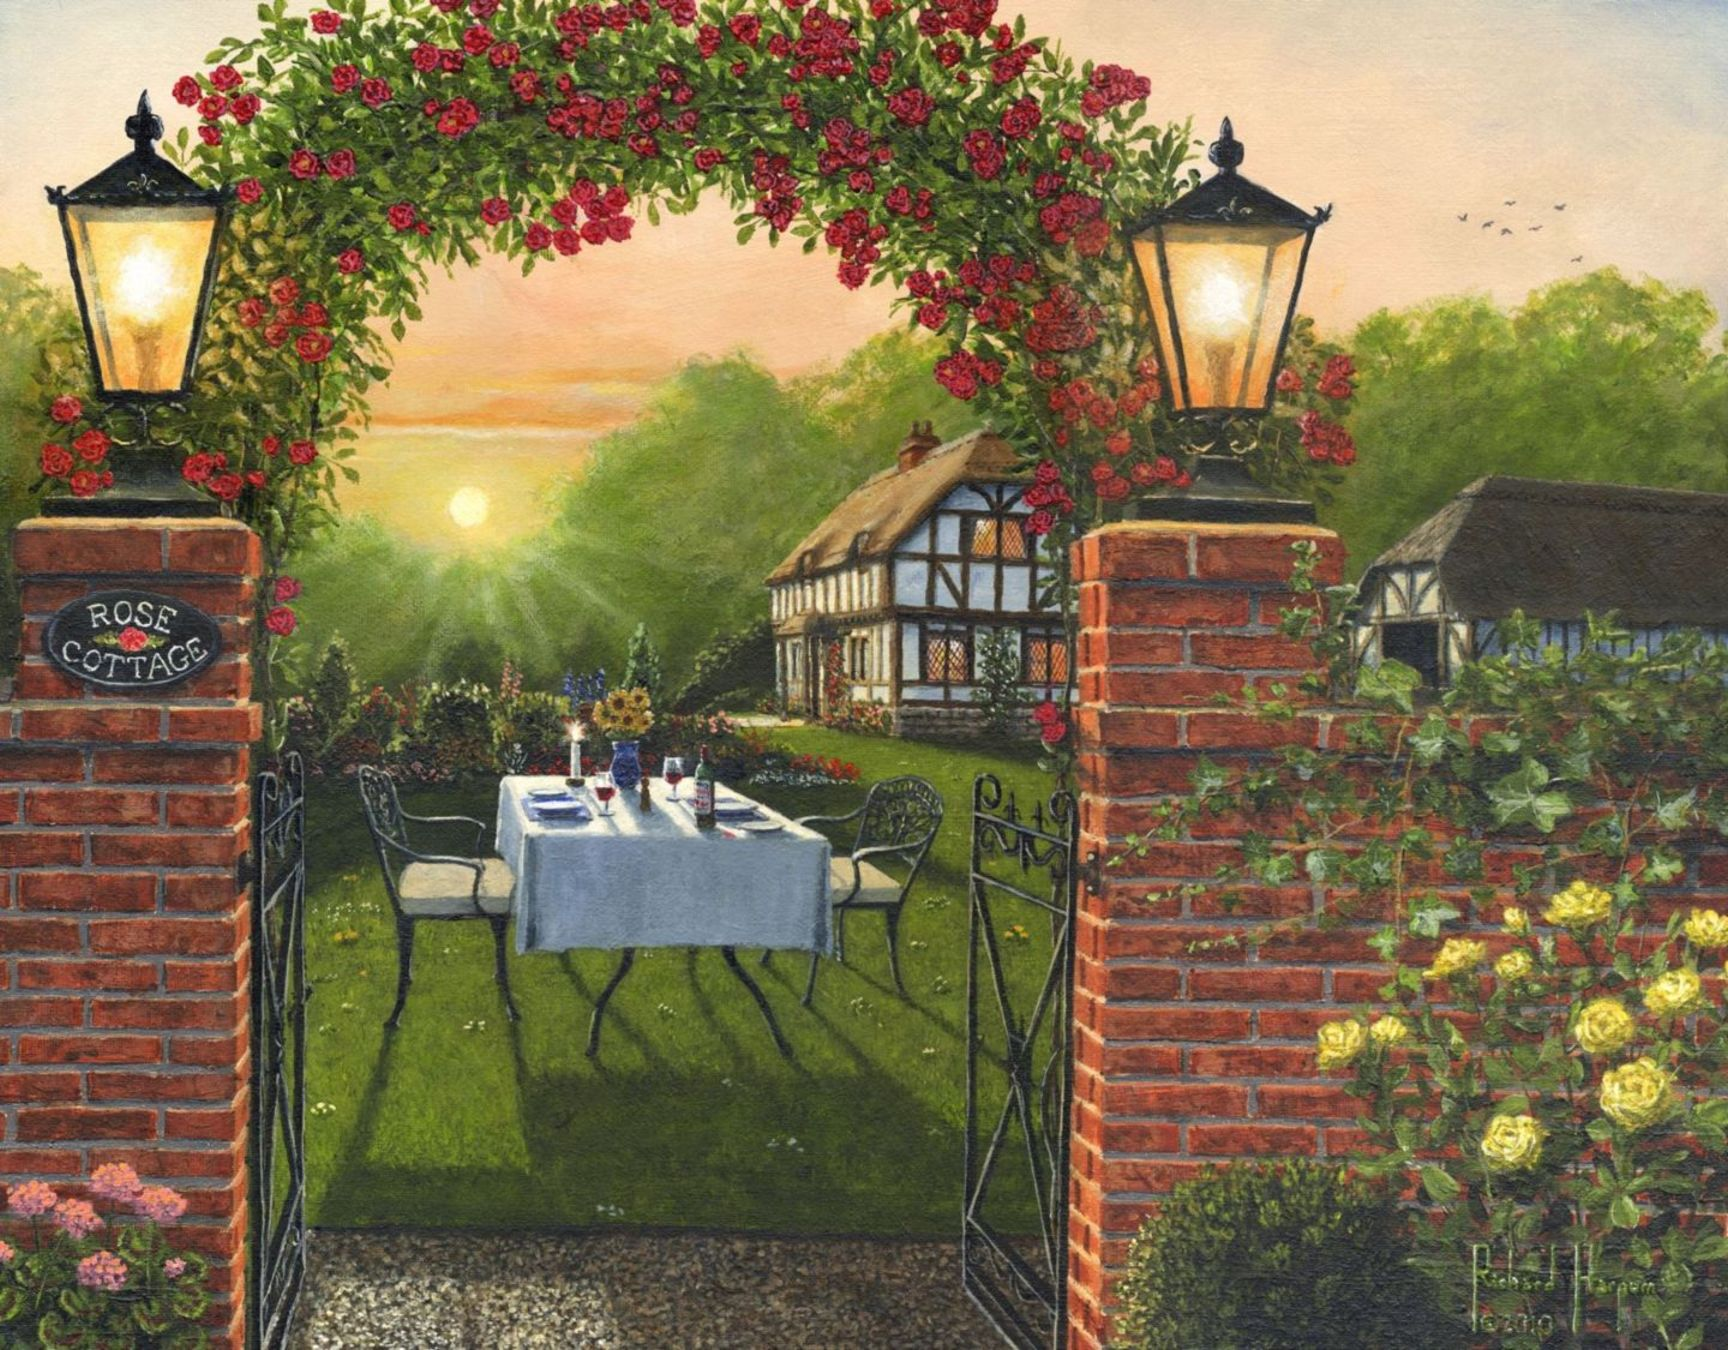 Painting - Rose Cottage - Dinner for Two